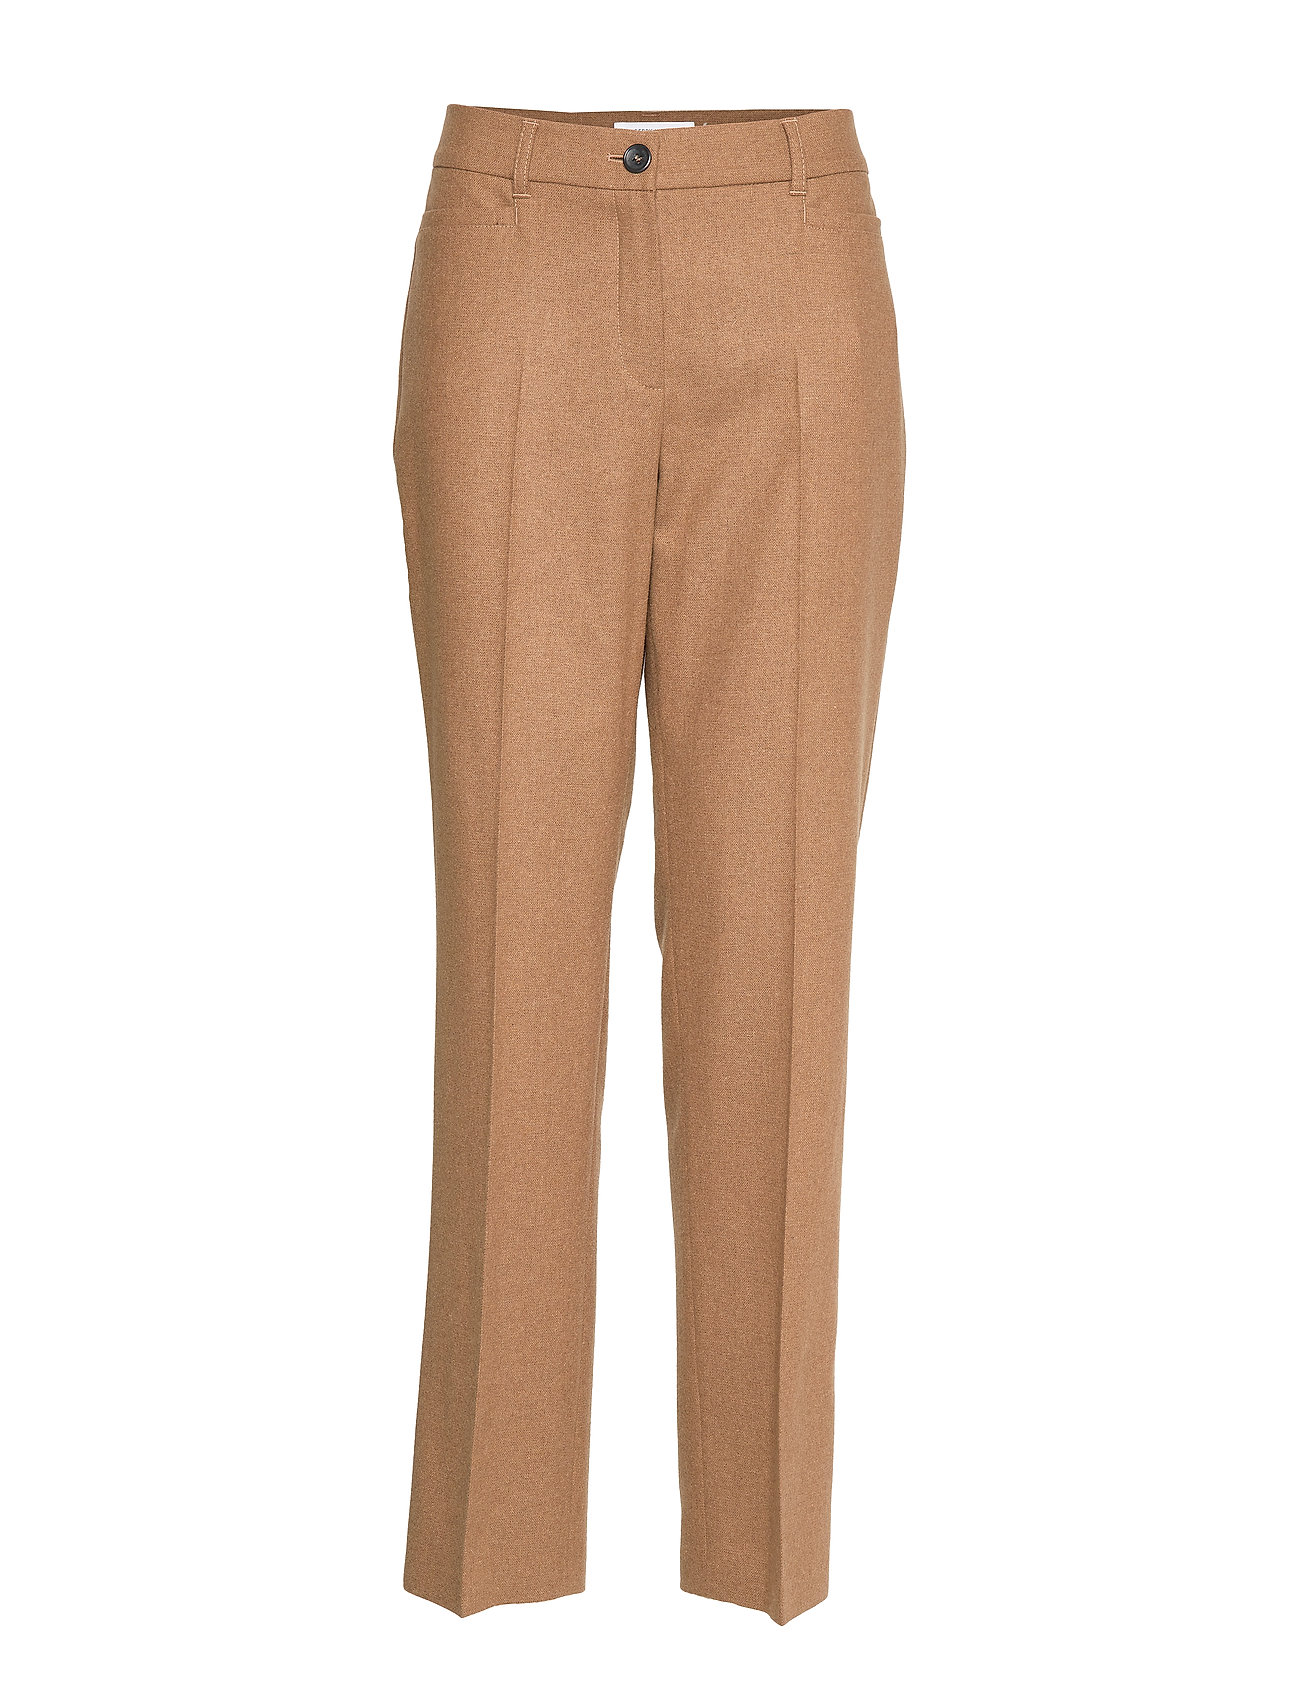 Gerry Weber Edition LEISURE TROUSERS LON - CARAMEL